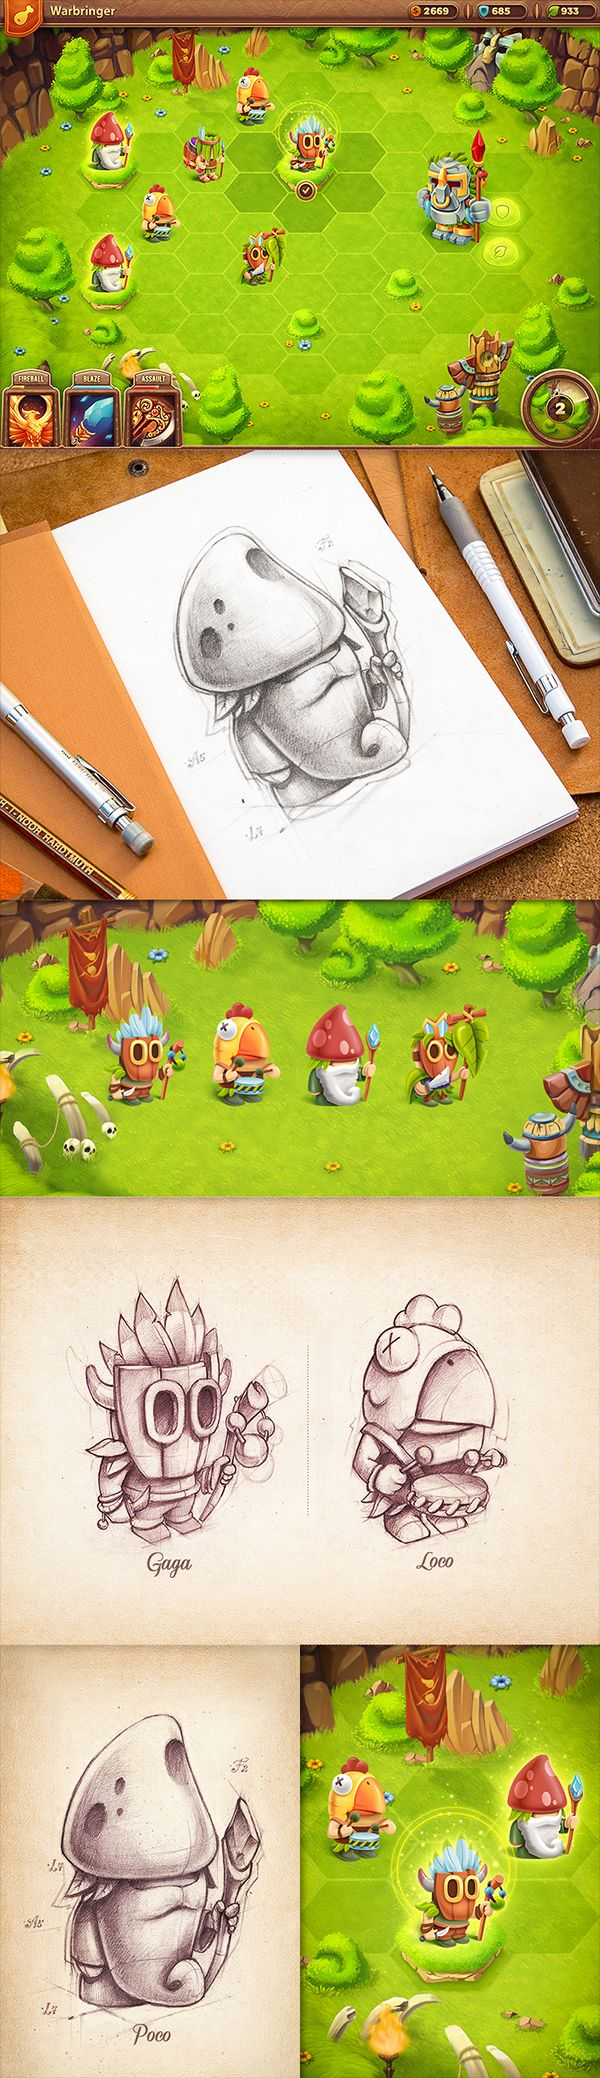 iOS game prototypes & concepts on Behance